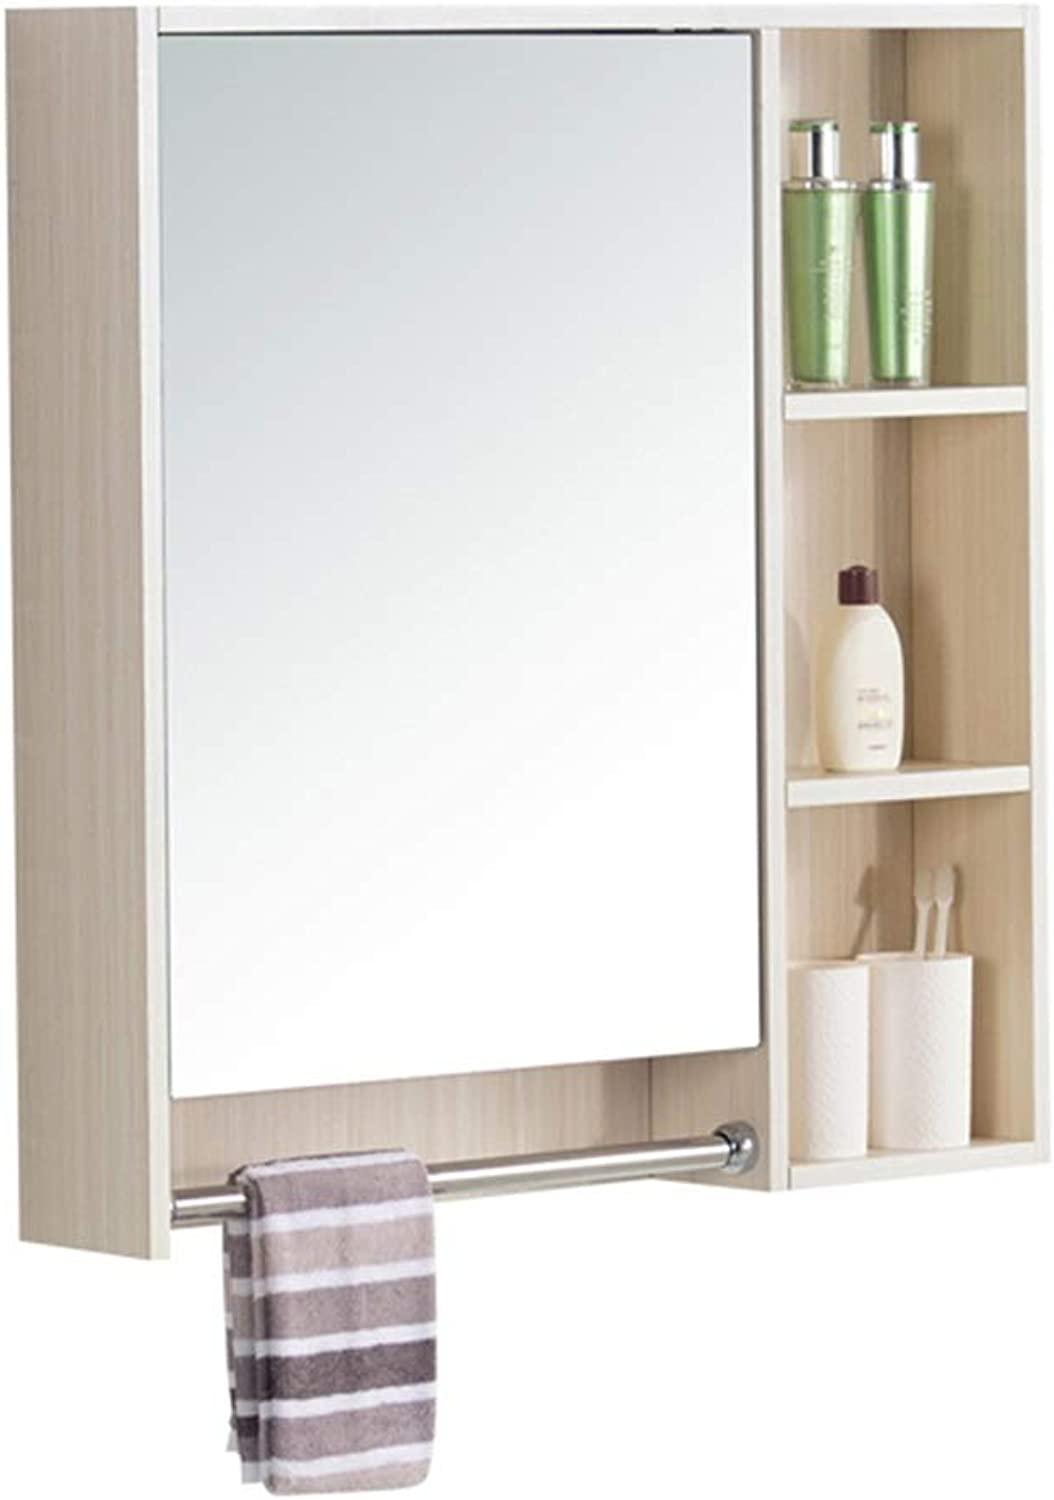 Wall-Mounted Mirror Cabinet Solid Wood Bathroom Mirror Cabinet Bedroom Vanity Mirror Cabinet with Towel Rack Mirror Cabinet (color   White, Size   60  70  12.5cm)